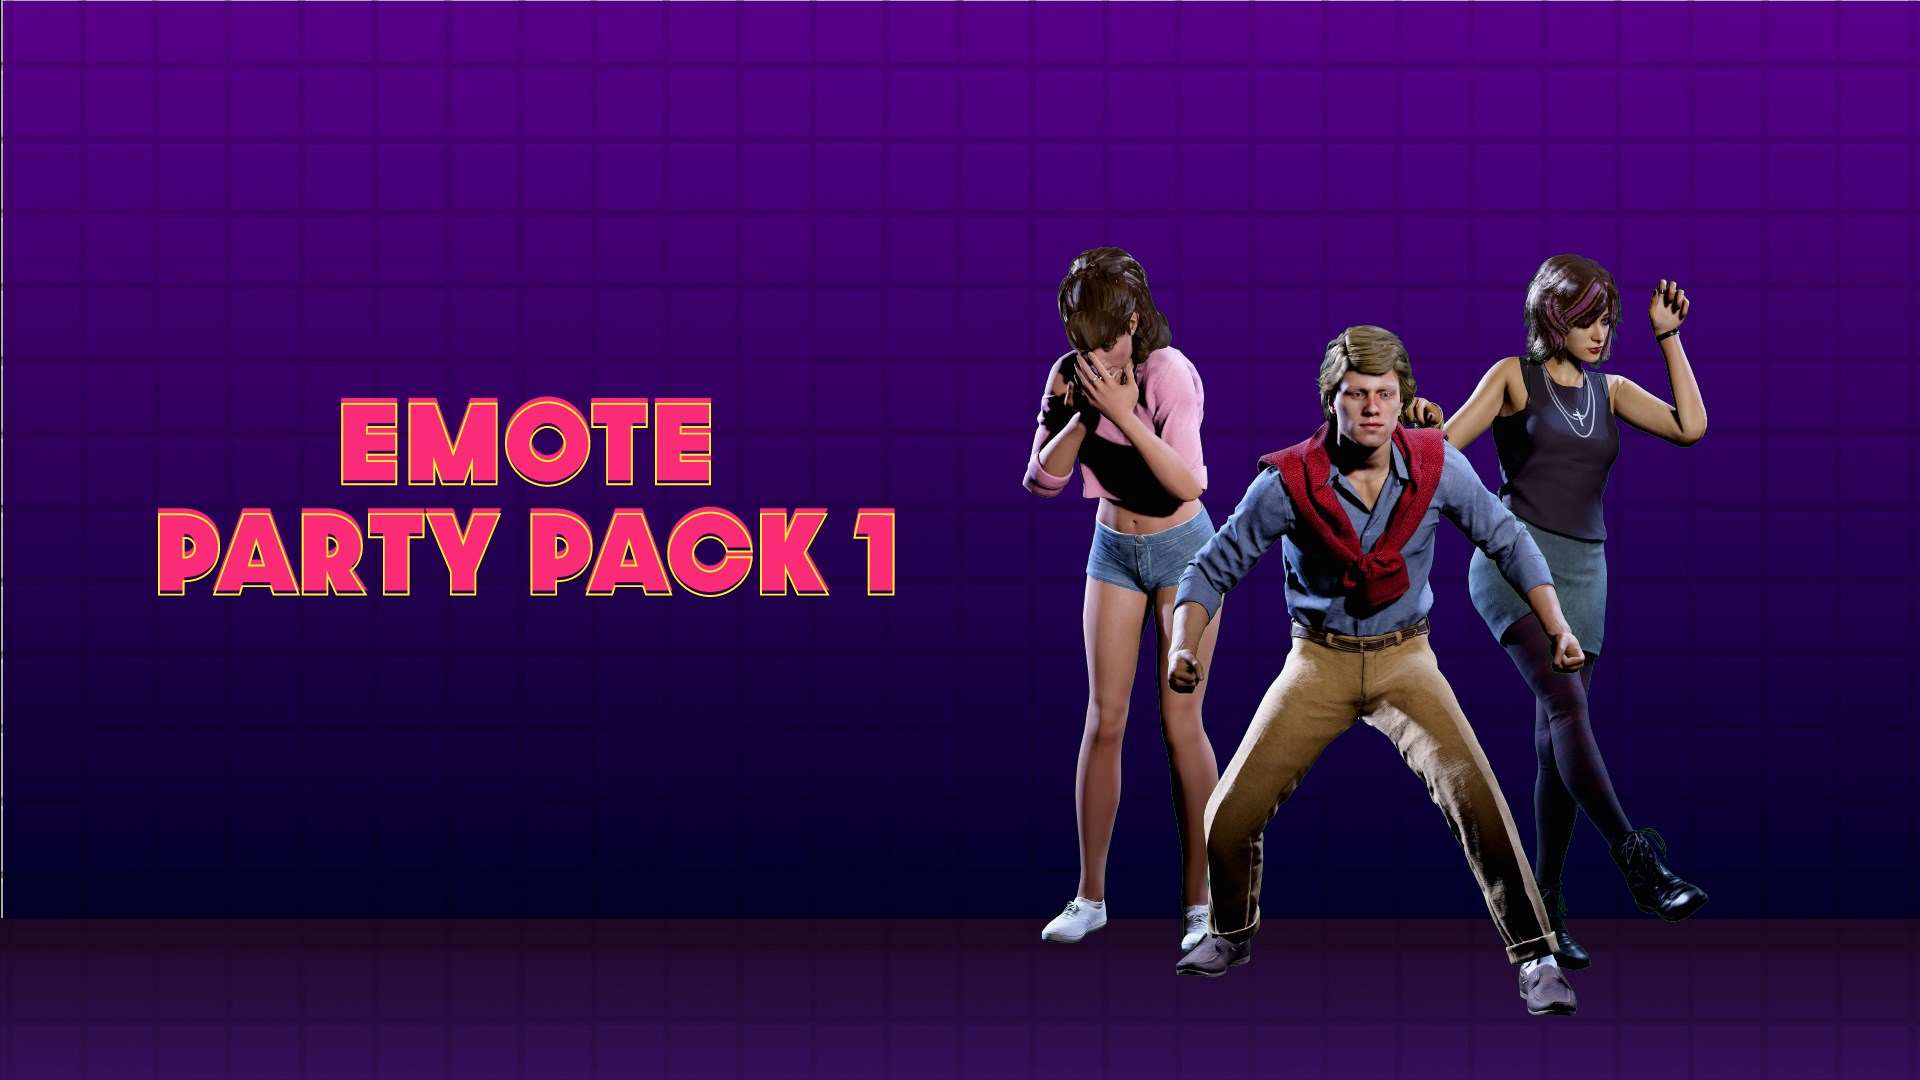 Emote Party Pack 1